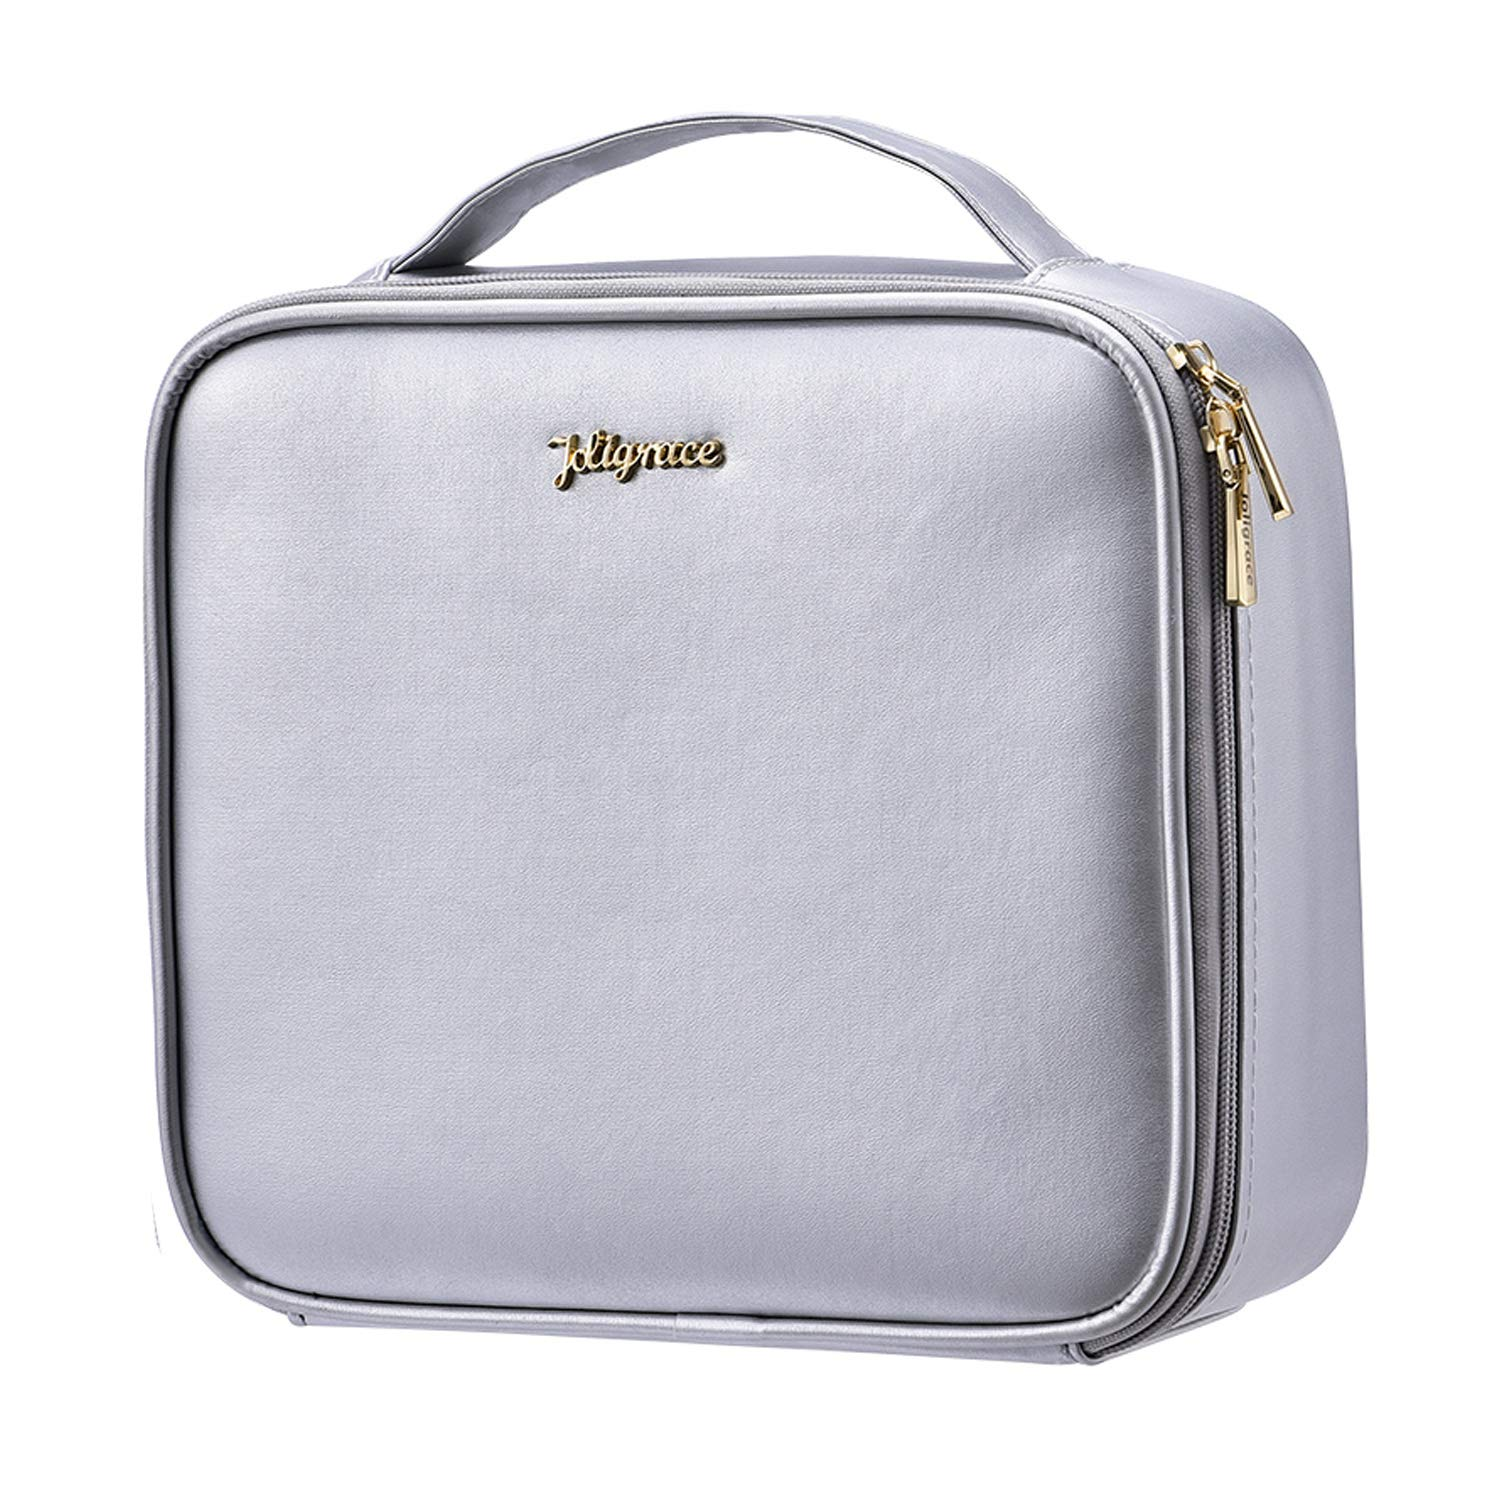 "Joligrace Upgraded Makeup Train Case 10.4"" PU Cosmetic Bag Travel Size Organizer with Brush Holder Pockets and Removable Dividers Silver"